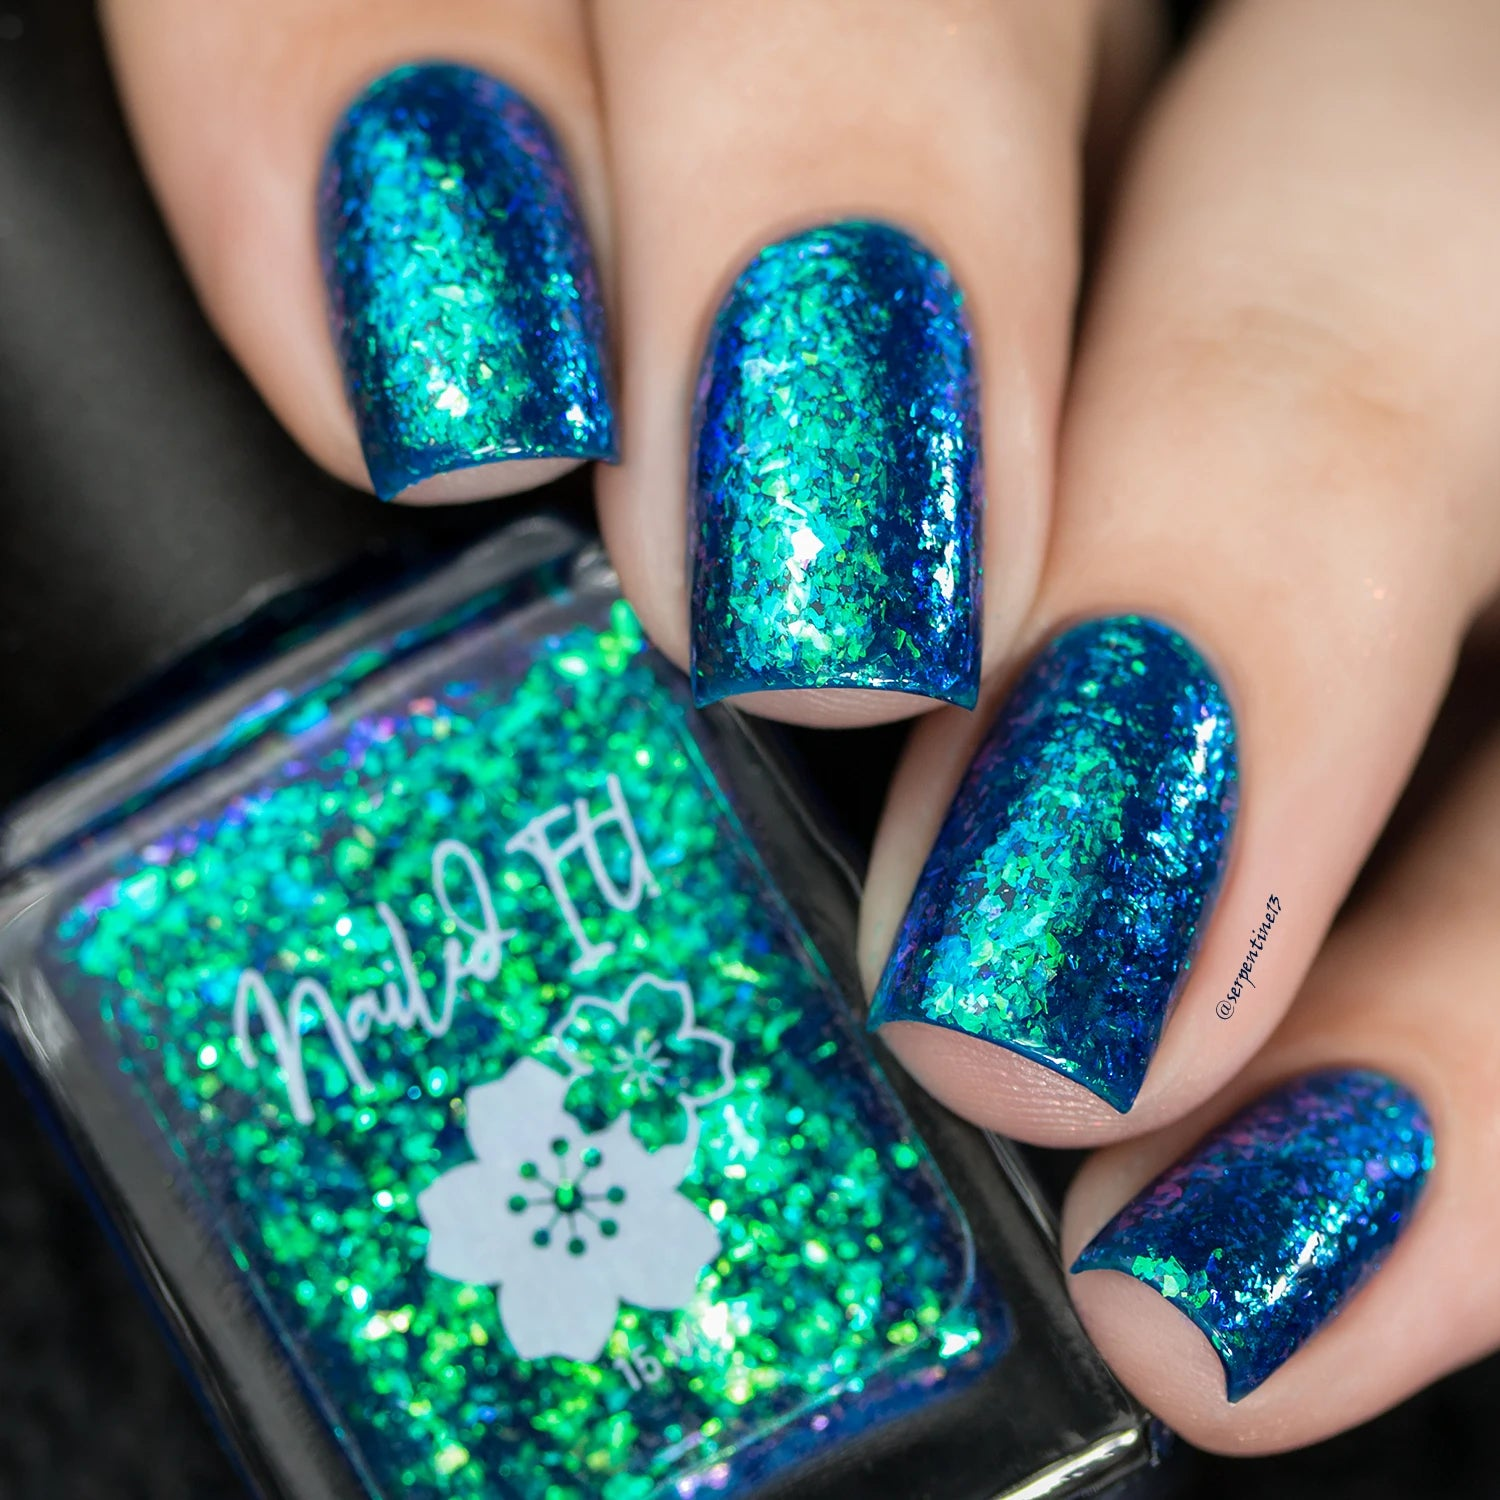 *PRE-ORDER* Nailed It! - Slumber Party - Movies & Manis